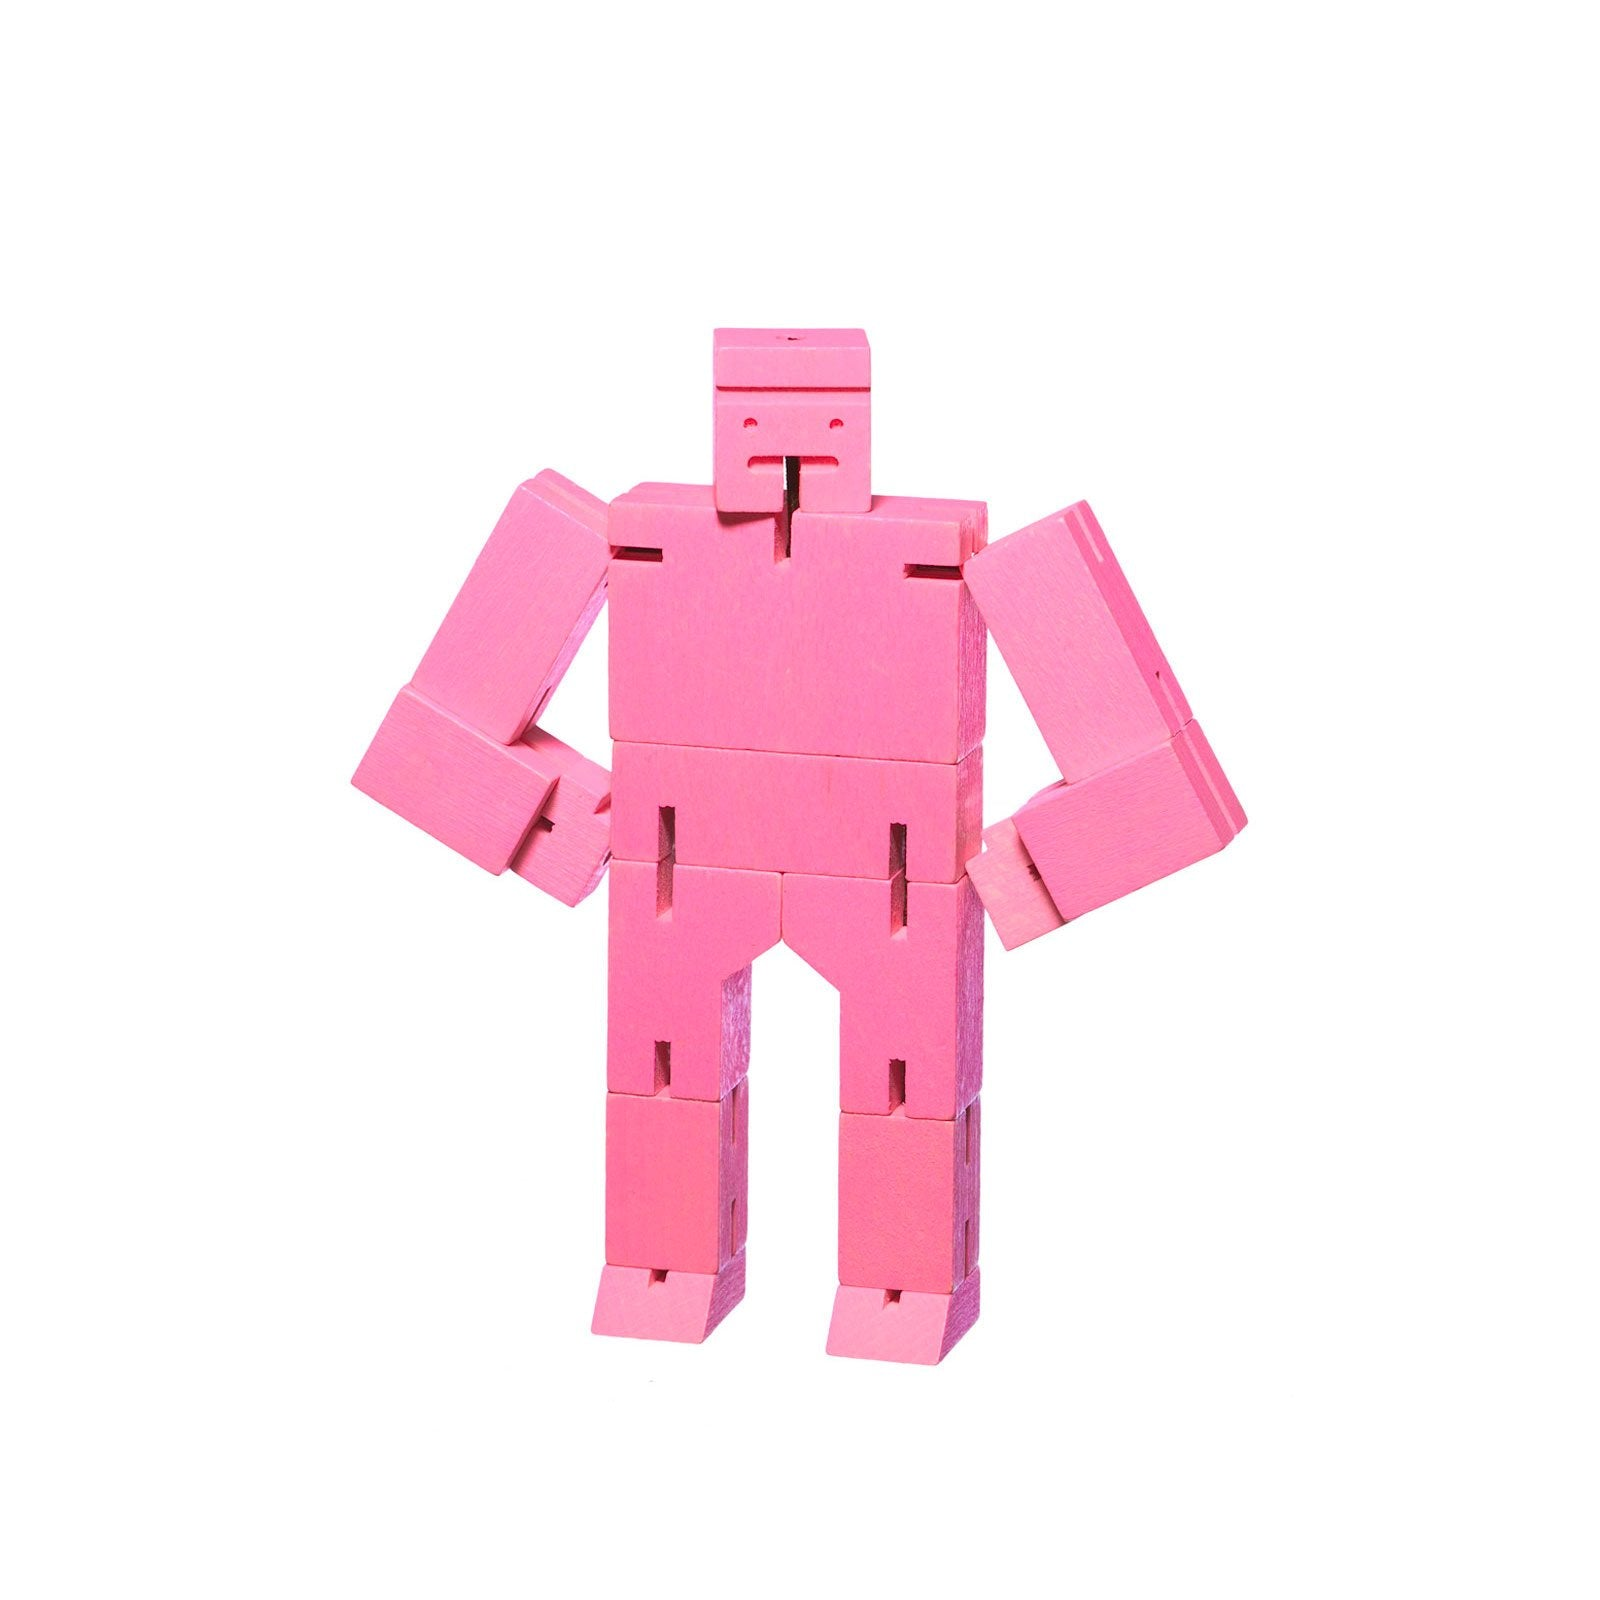 Cubebots David Weeks Studio Activity Toys Micro / Pink at Little Earth Nest Eco Shop